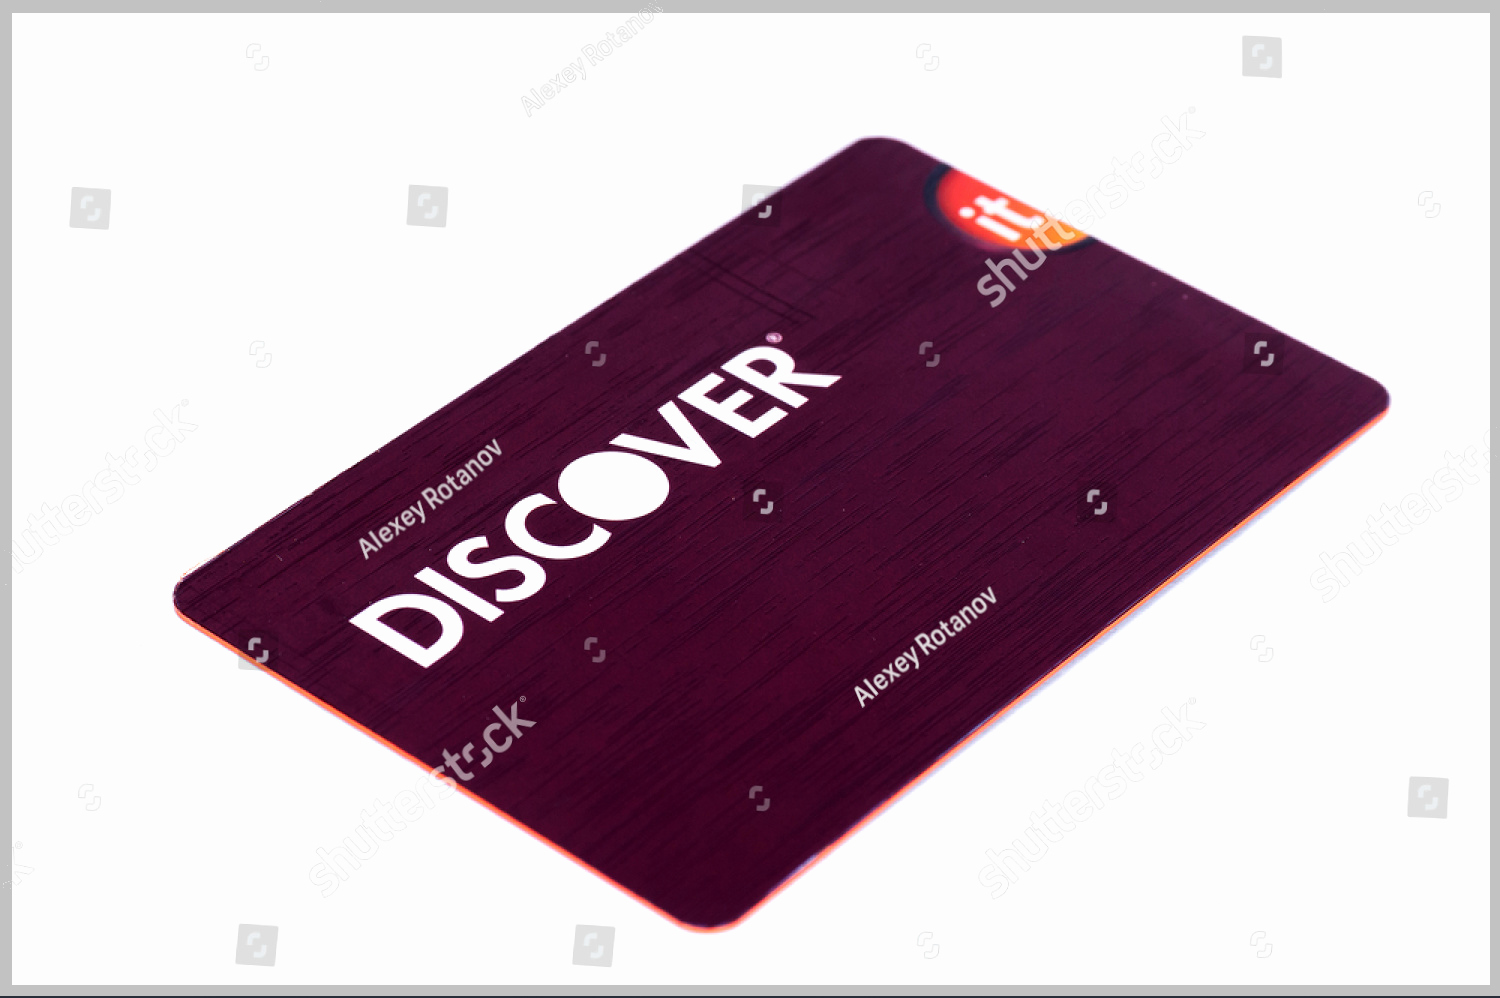 Discover Credit Card Designs Elegant 8 Discover Card Designs